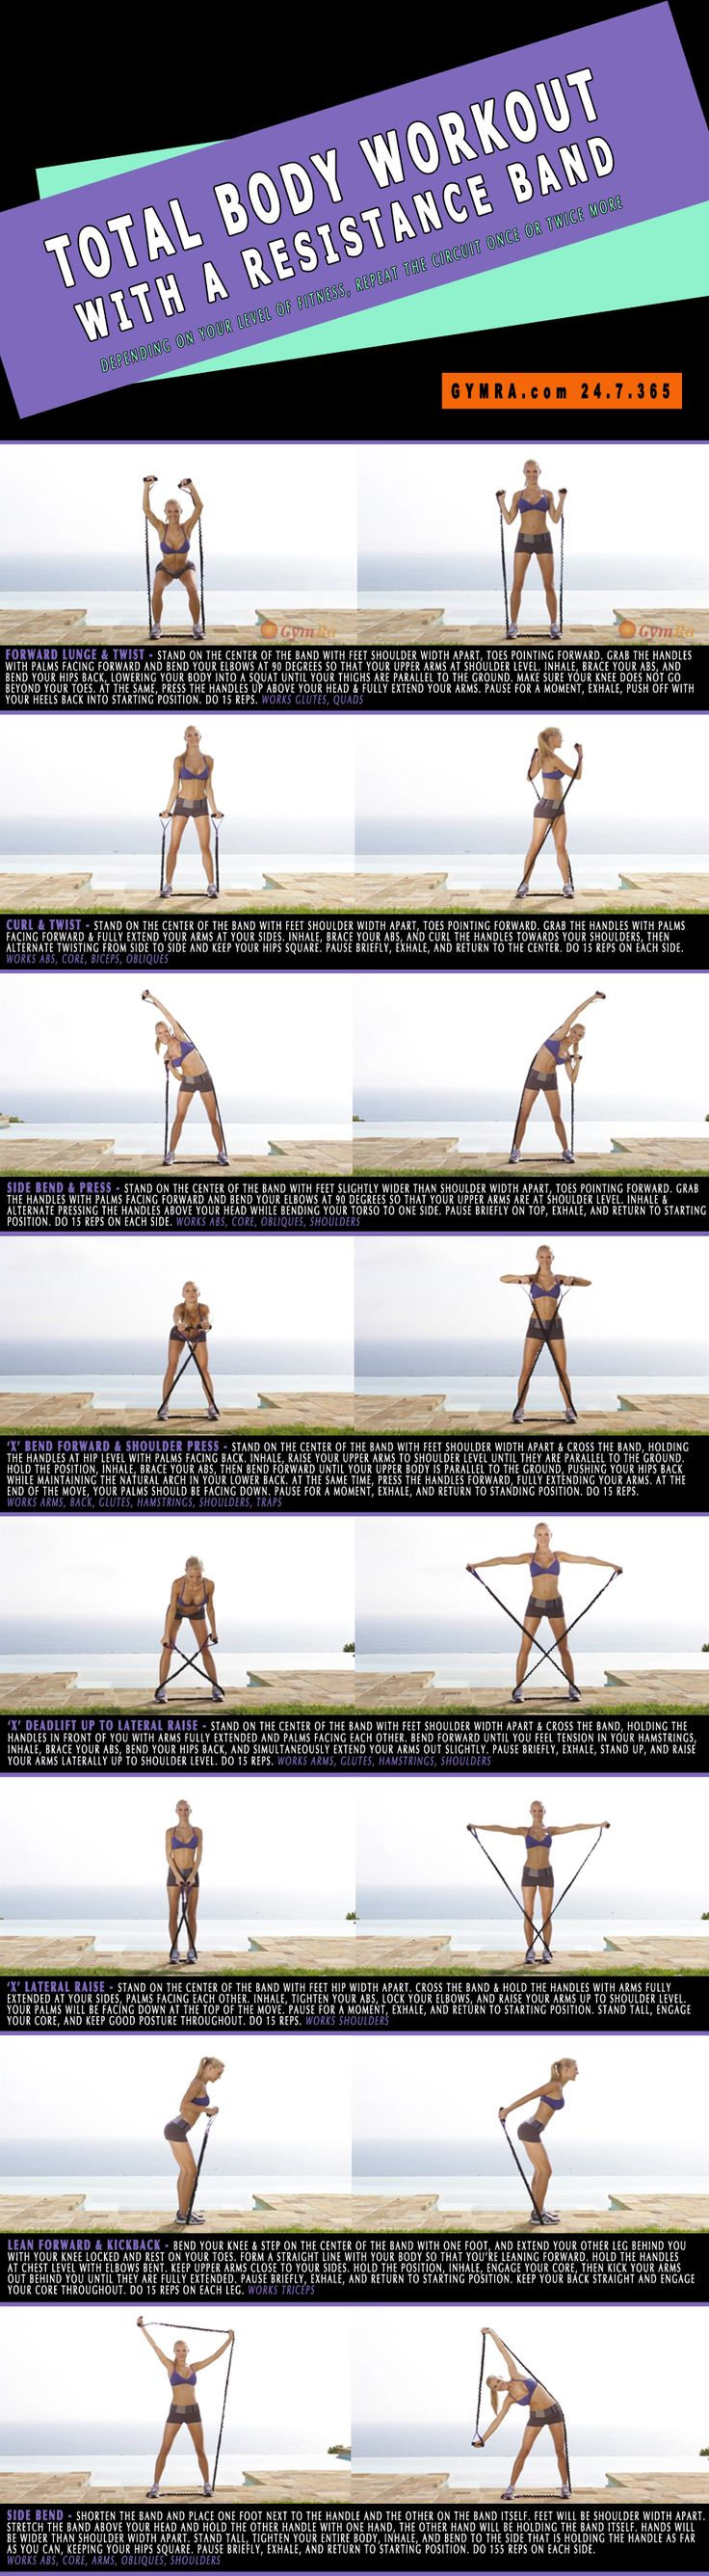 Resistance band workouts More